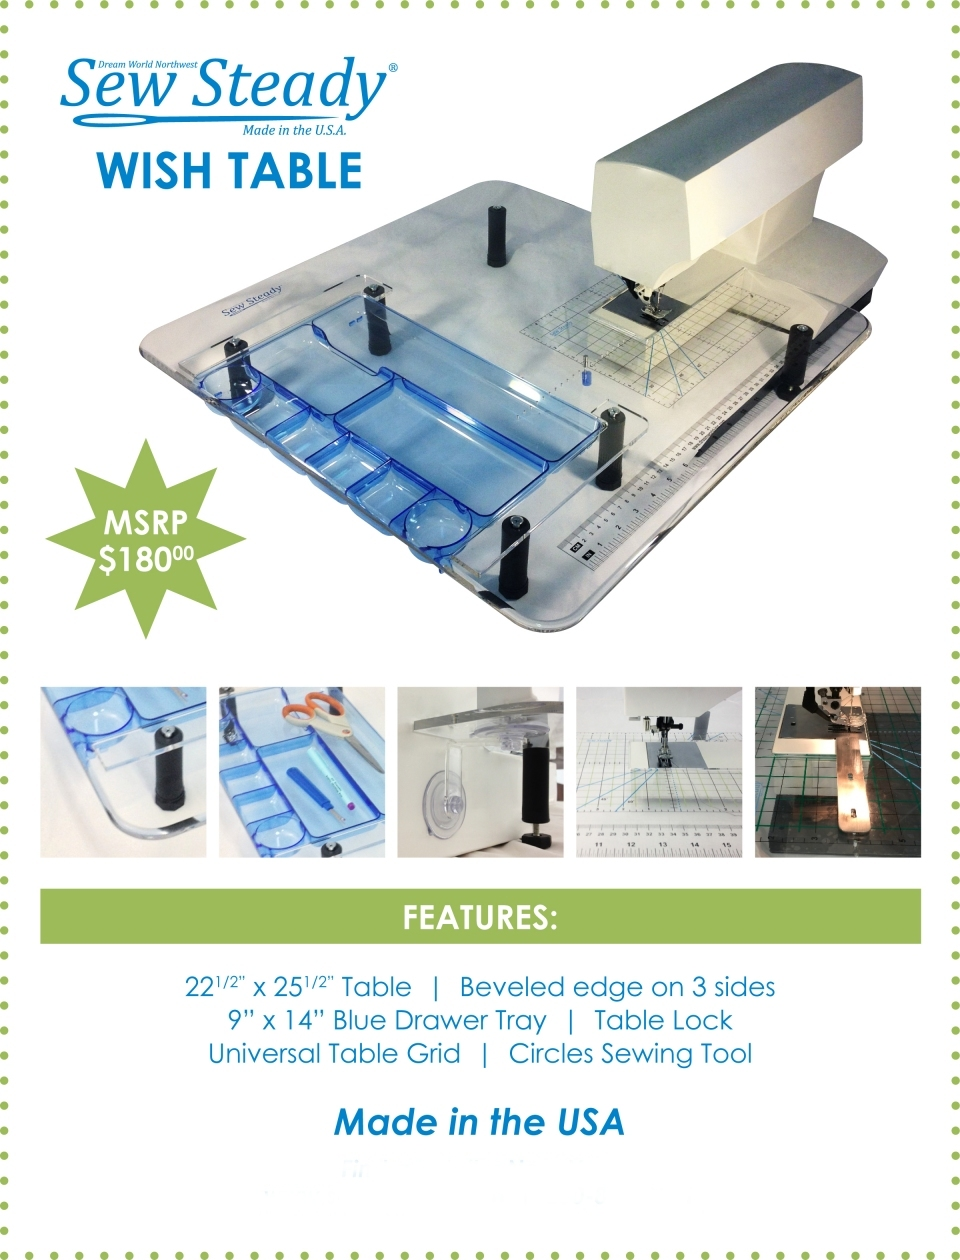 WISH TABLE